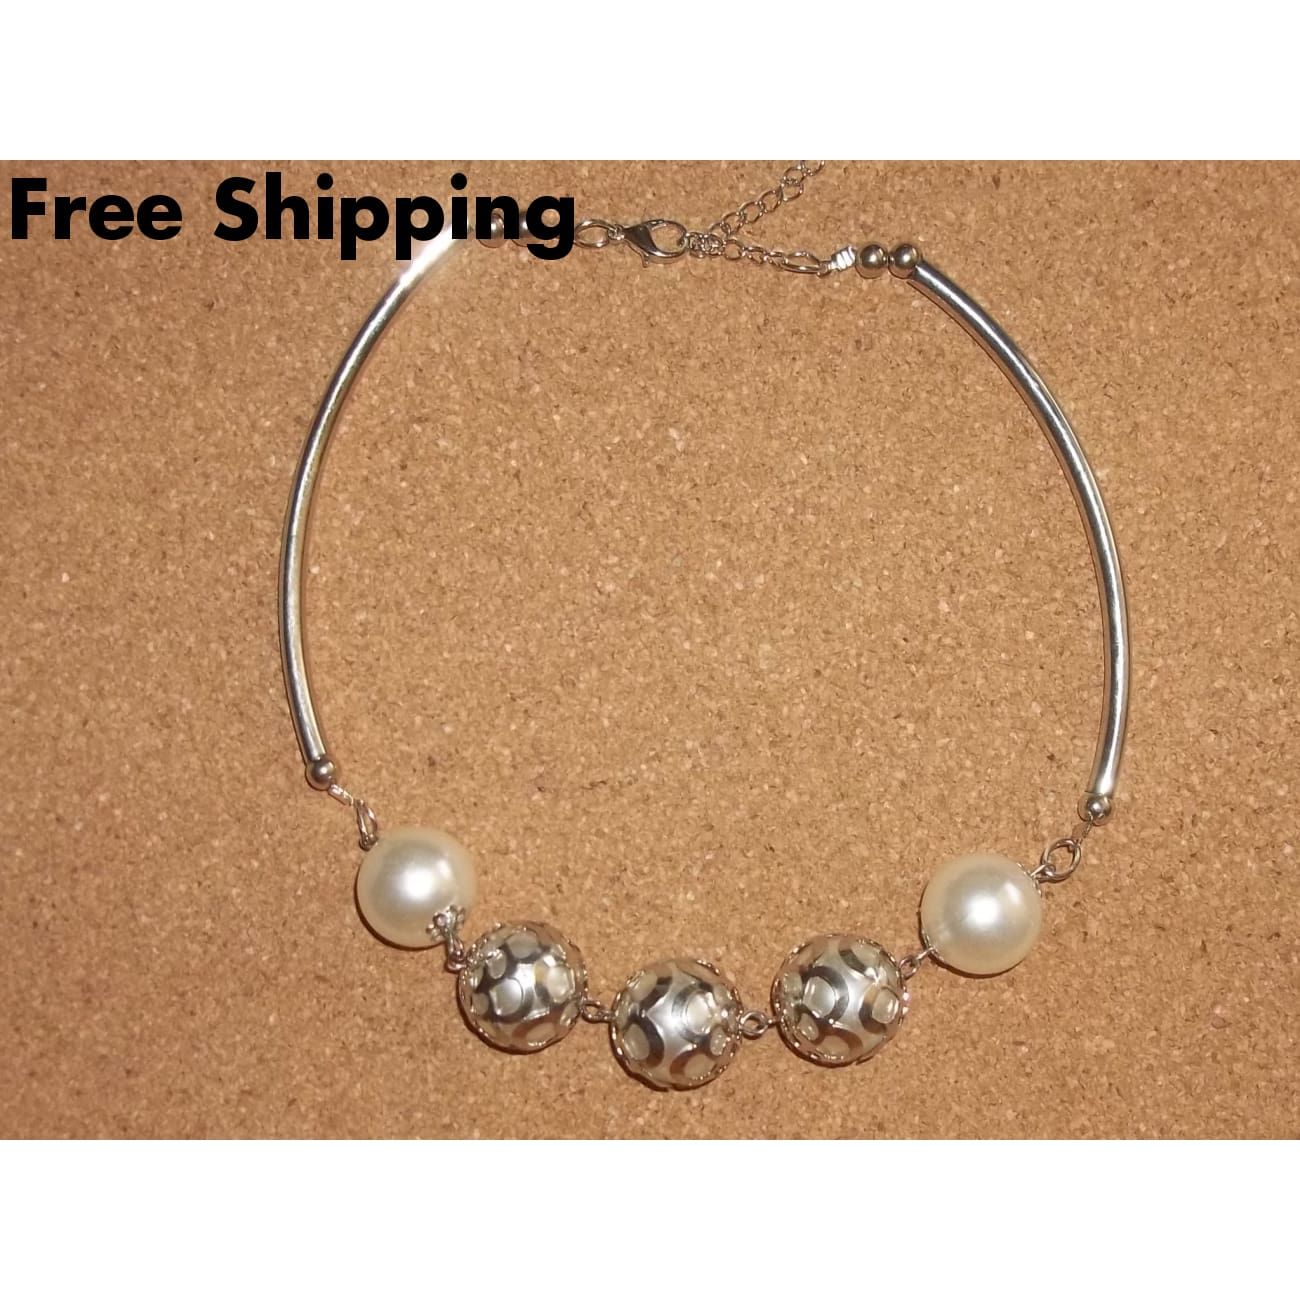 Large Pearl & Tube Bead Silver Plated Wedding Prom Formal Statement Necklace 18-20Adjustable - Necklaces